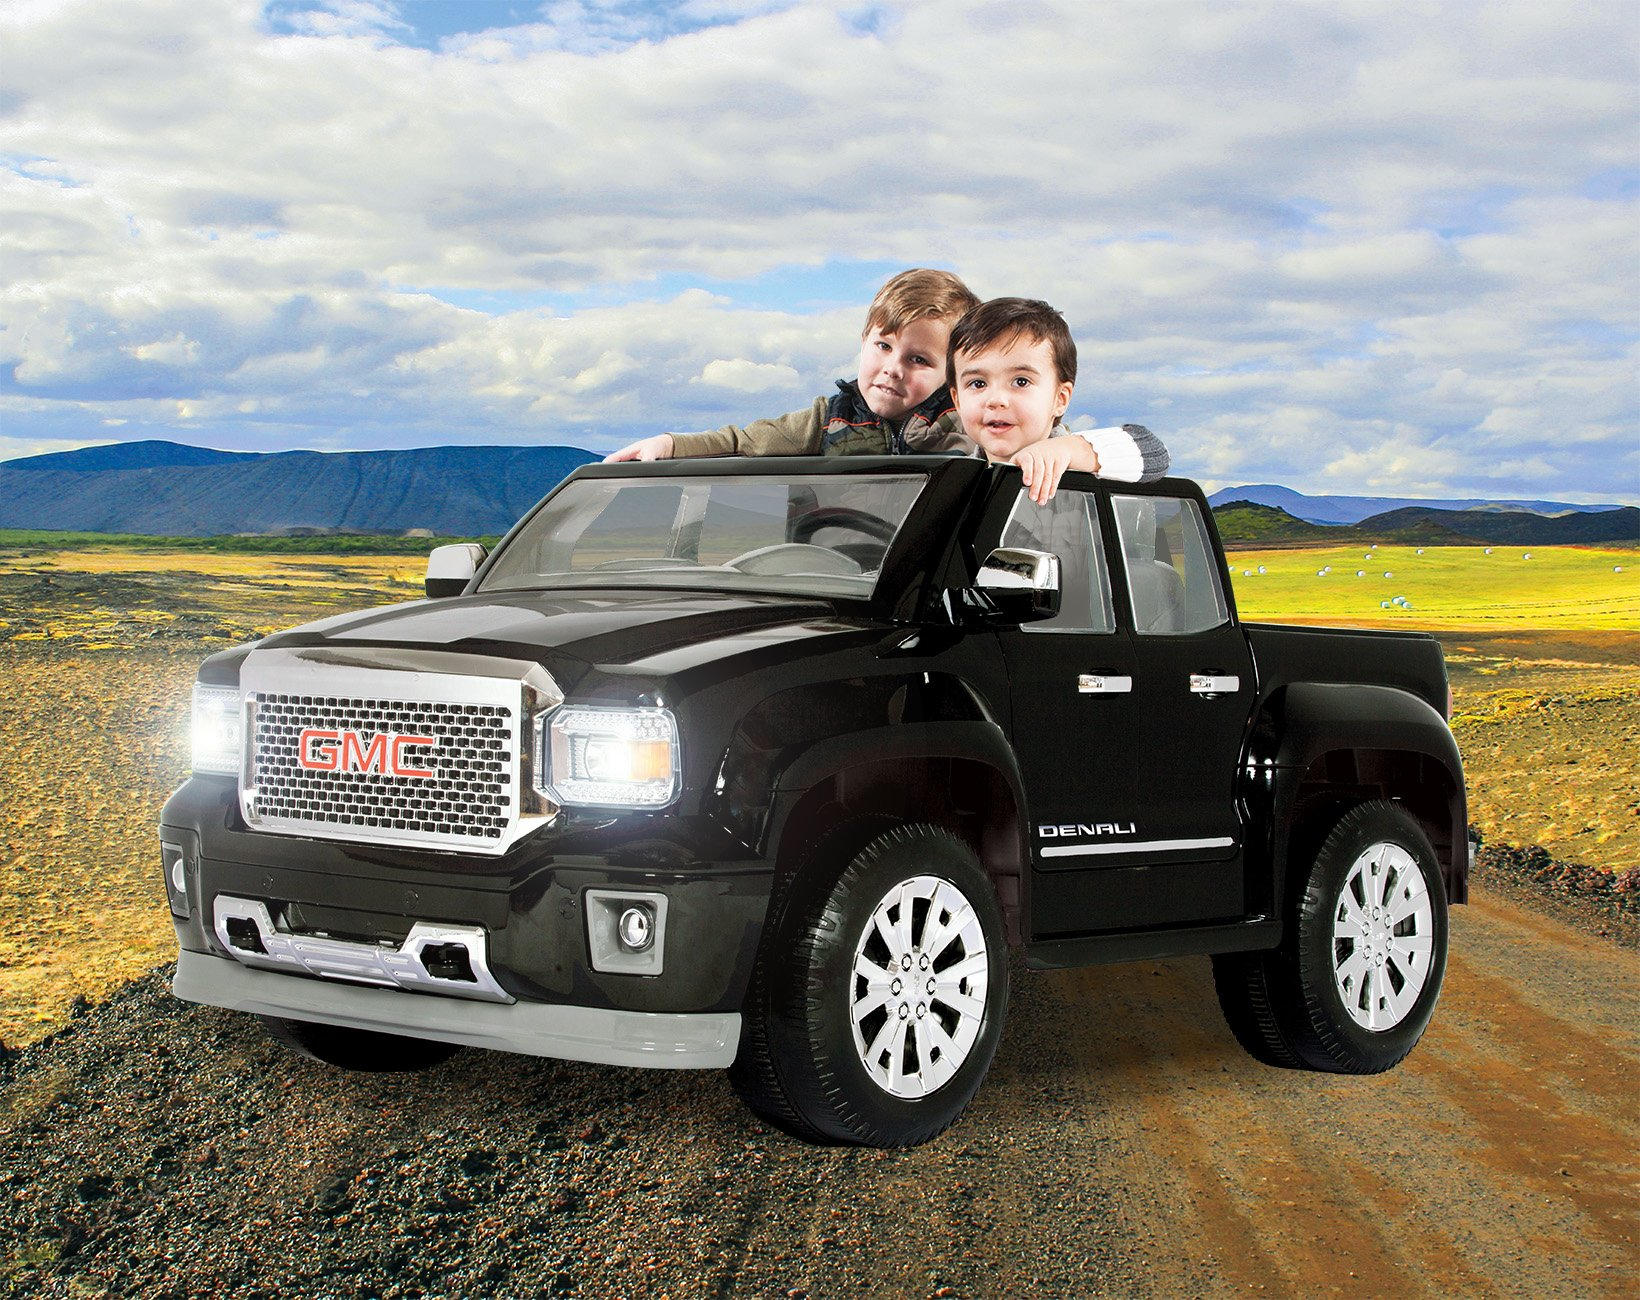 Rollplay GMC Sierra Denali 12-Volt Battery-Powered Ride-On, Black by Rollplay (Image #10)